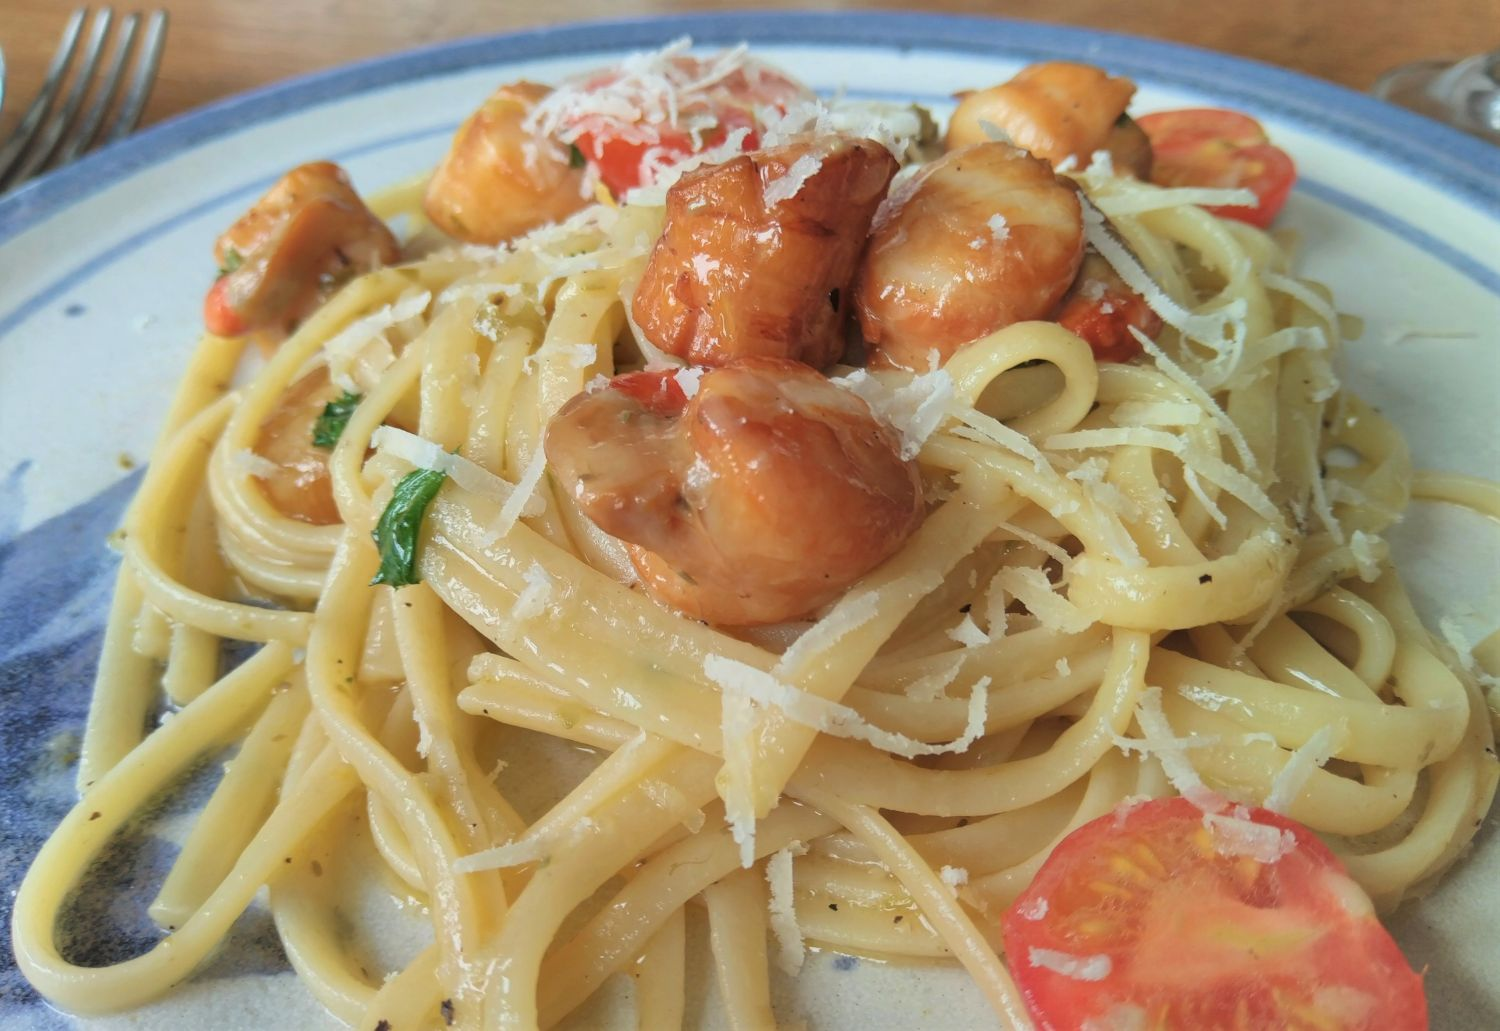 Smoked Orkney Queenies (Queen Scallops) with Lemon Caper Pasta